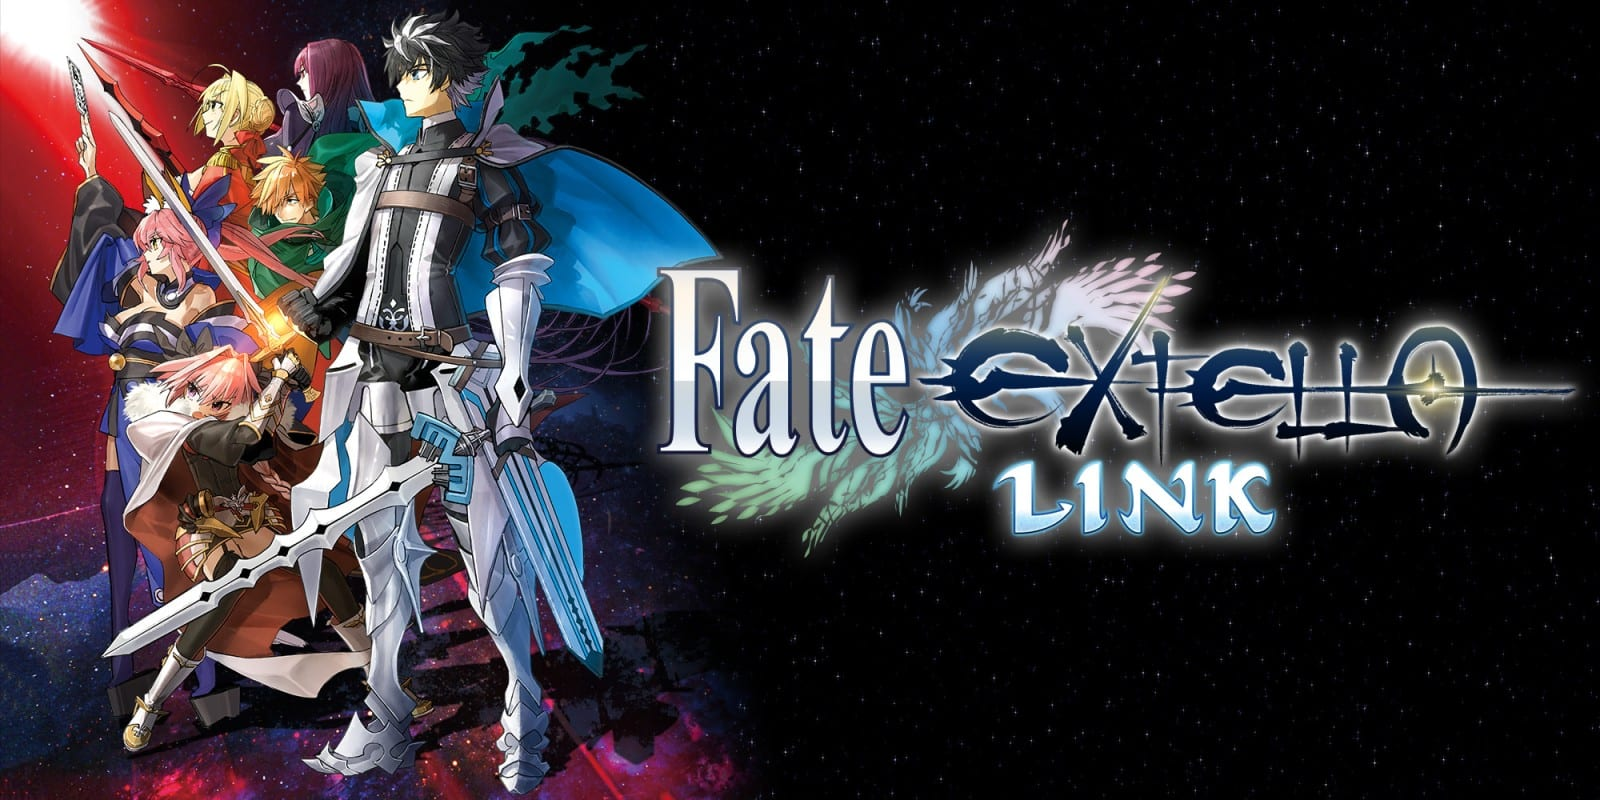 Fate / Extella Link llega a Nintendo Switch, PS4 y PS Vita en Europa